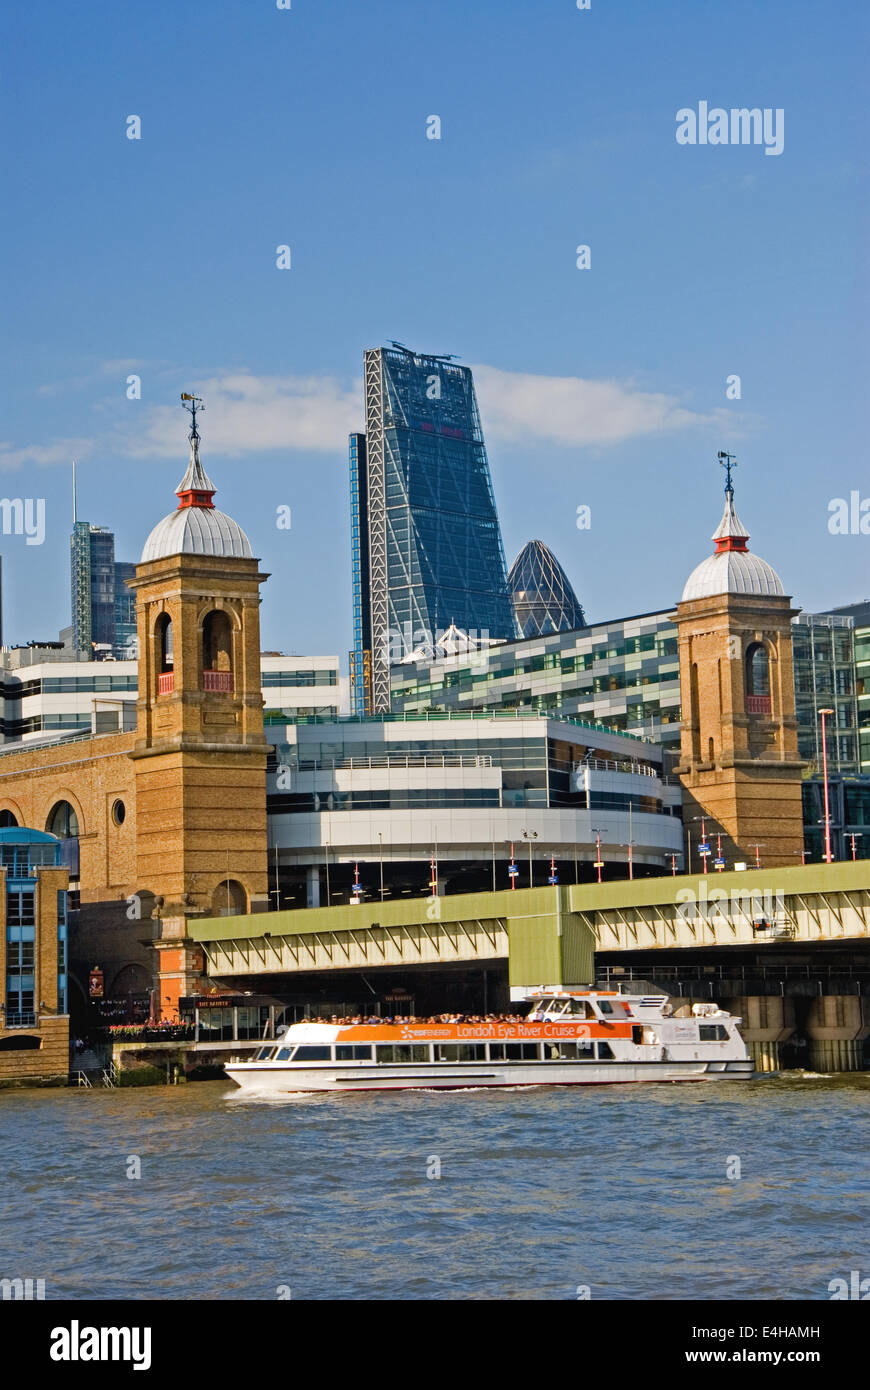 Cannon Street station stands on the north bank of the River Thames in the heart of the City of London. - Stock Image